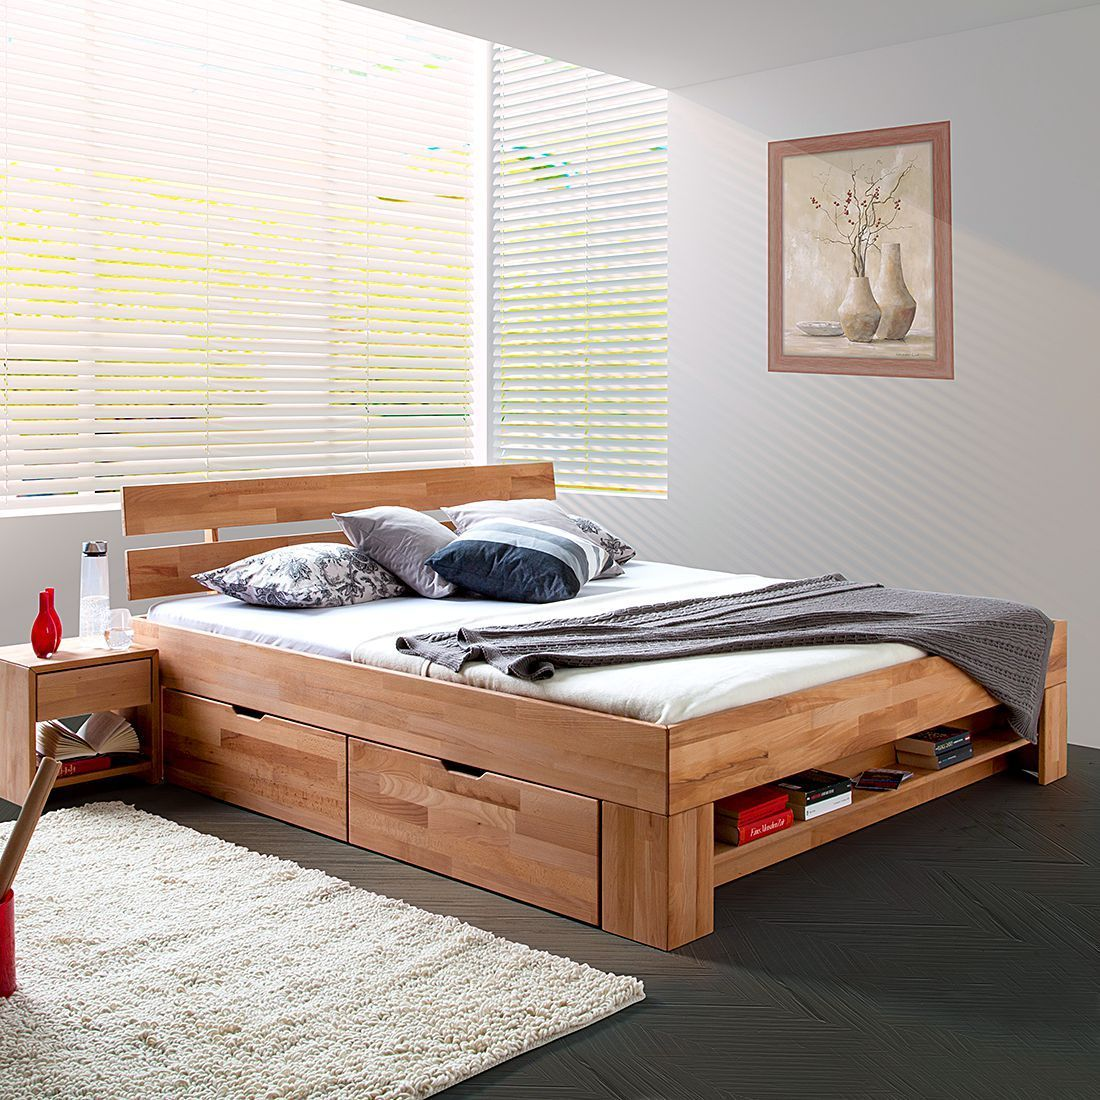 Wooden bed EosWOOD (including Bettkaesten) in 2020